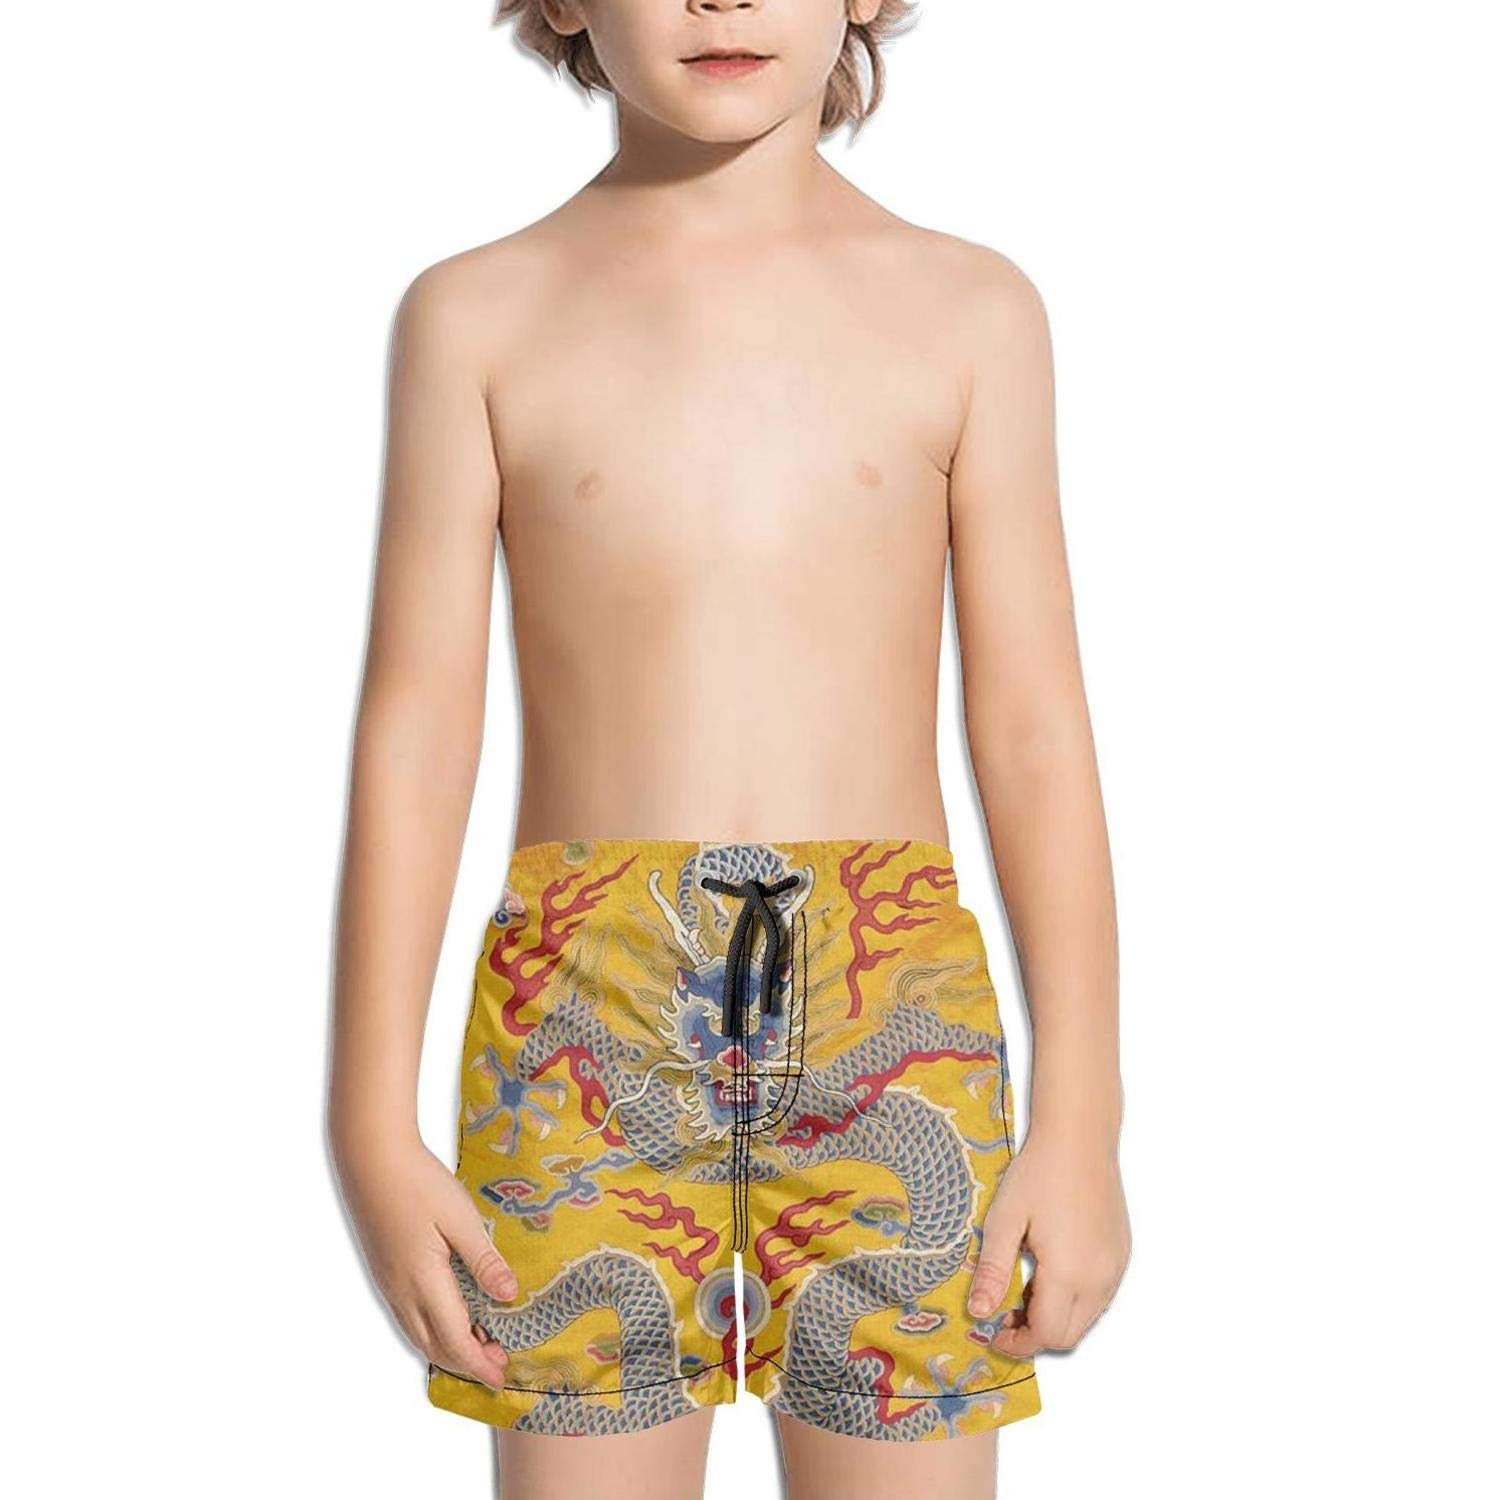 Lenard Hughes Boys Quick Dry Beach Shorts with Pockets Ancient Chinese Qing Dynasty Emperor's Dragon Swim Trunks for Summer